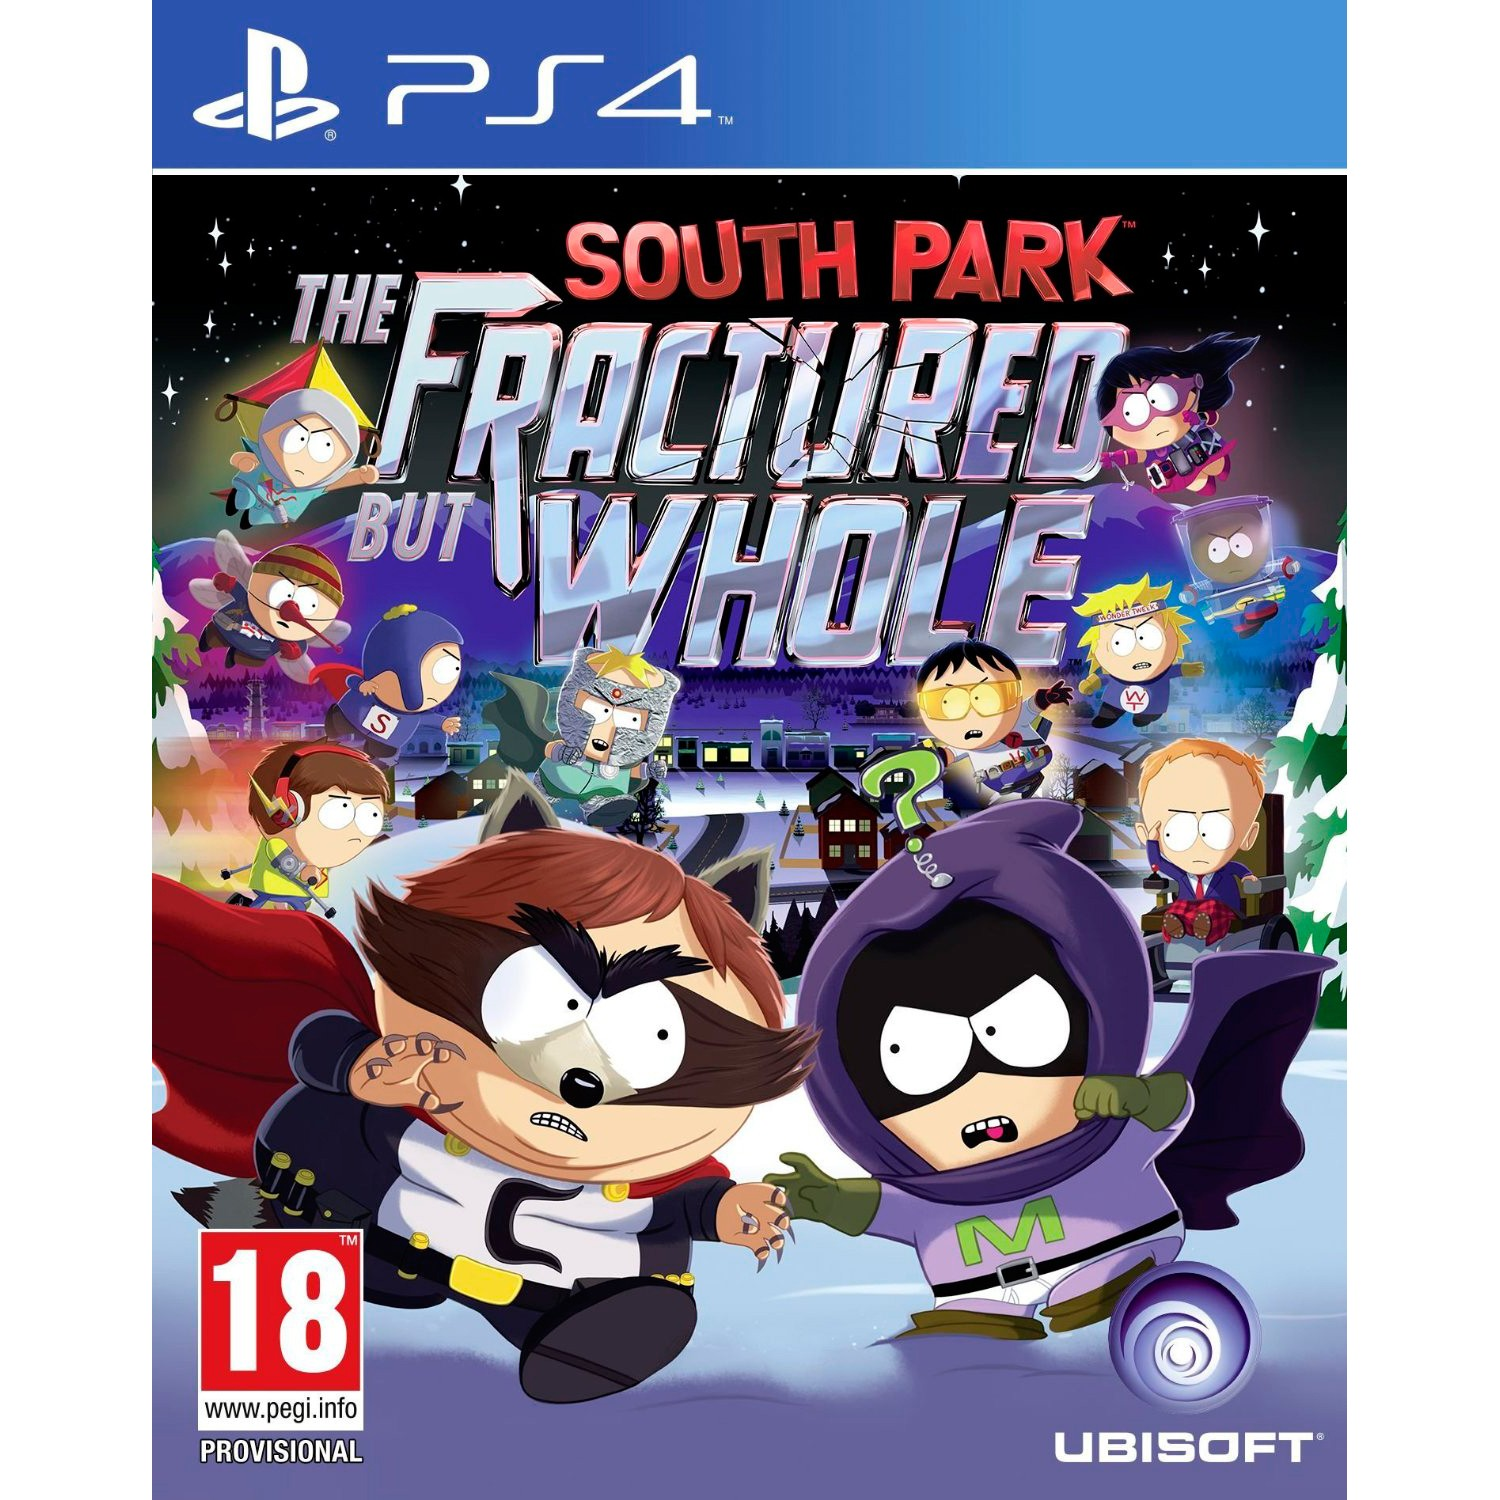 PS4SOUTHPFBW : South Park: The Fractured but Whole (PS4)